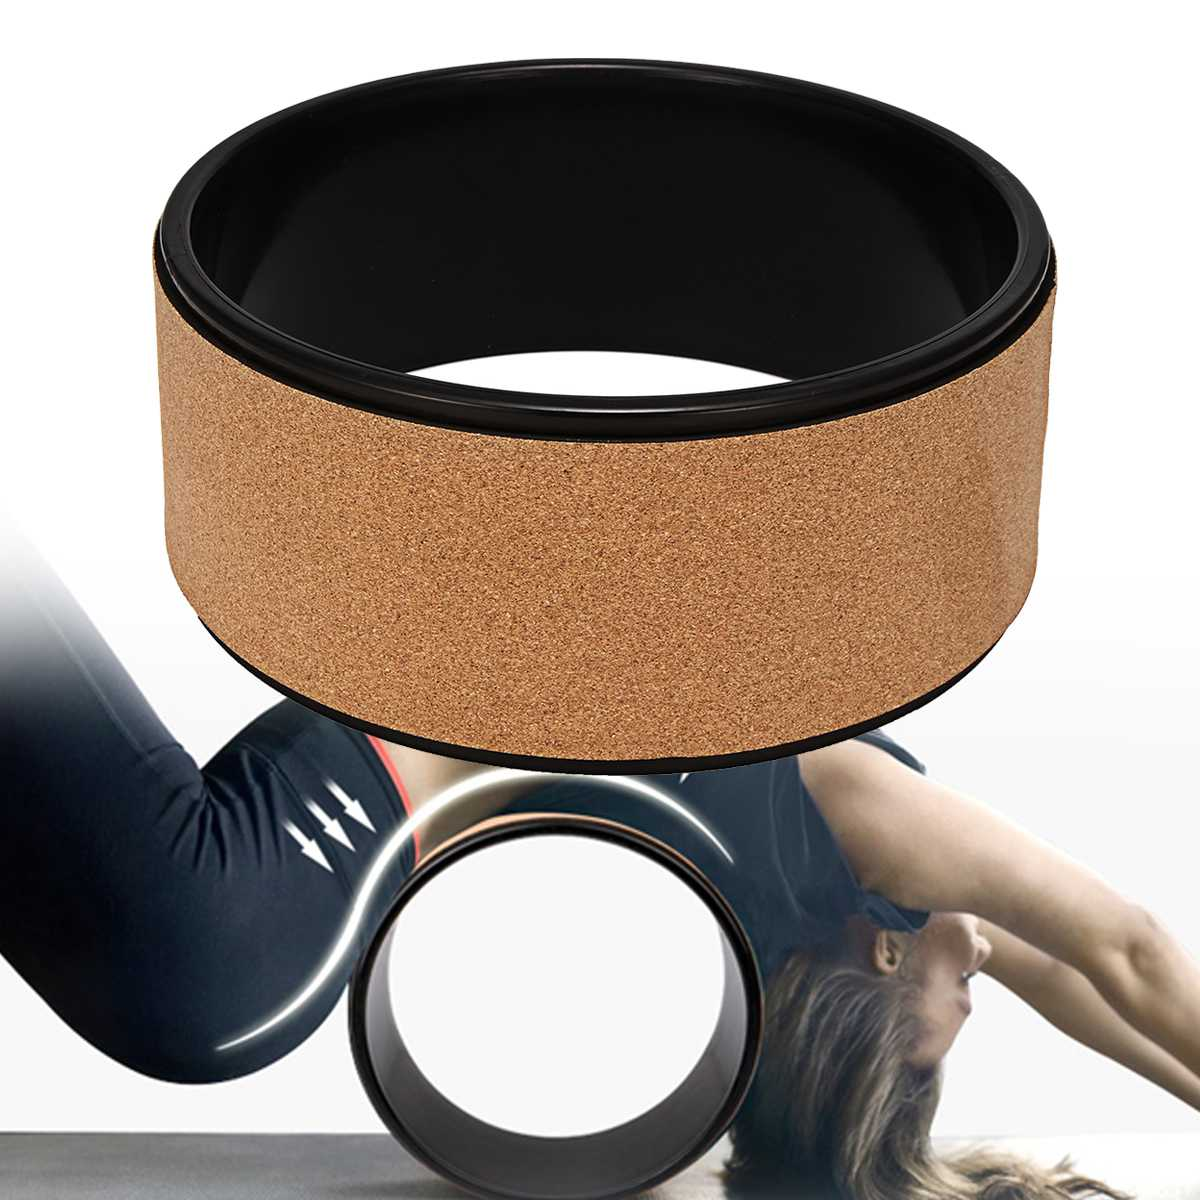 13''Yoga Wheel Premium Natural Roller Circles Cork Backbend Stretch 240KG Weight Bearing Fitness Body Building Yoga Supplies